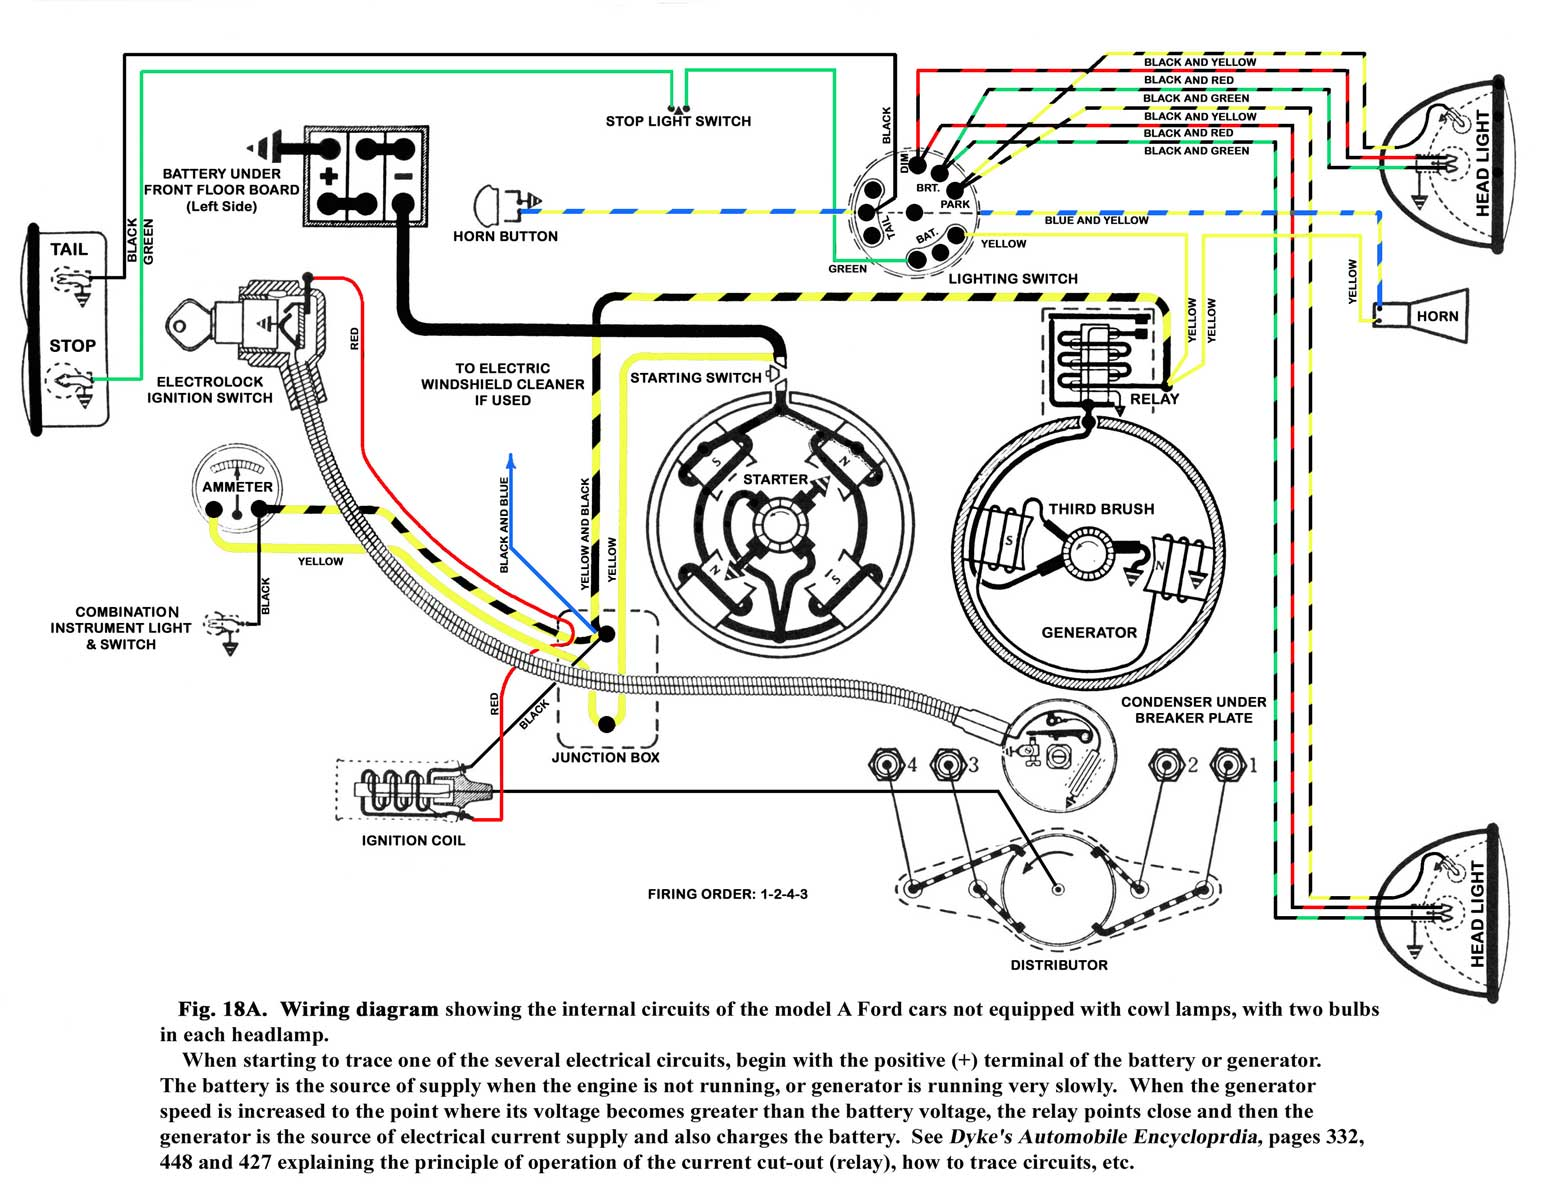 model a wiring diagram – capitol a's model a wiring diagram nordyne fehb unit on 017ha model a wiring diagram horn #4